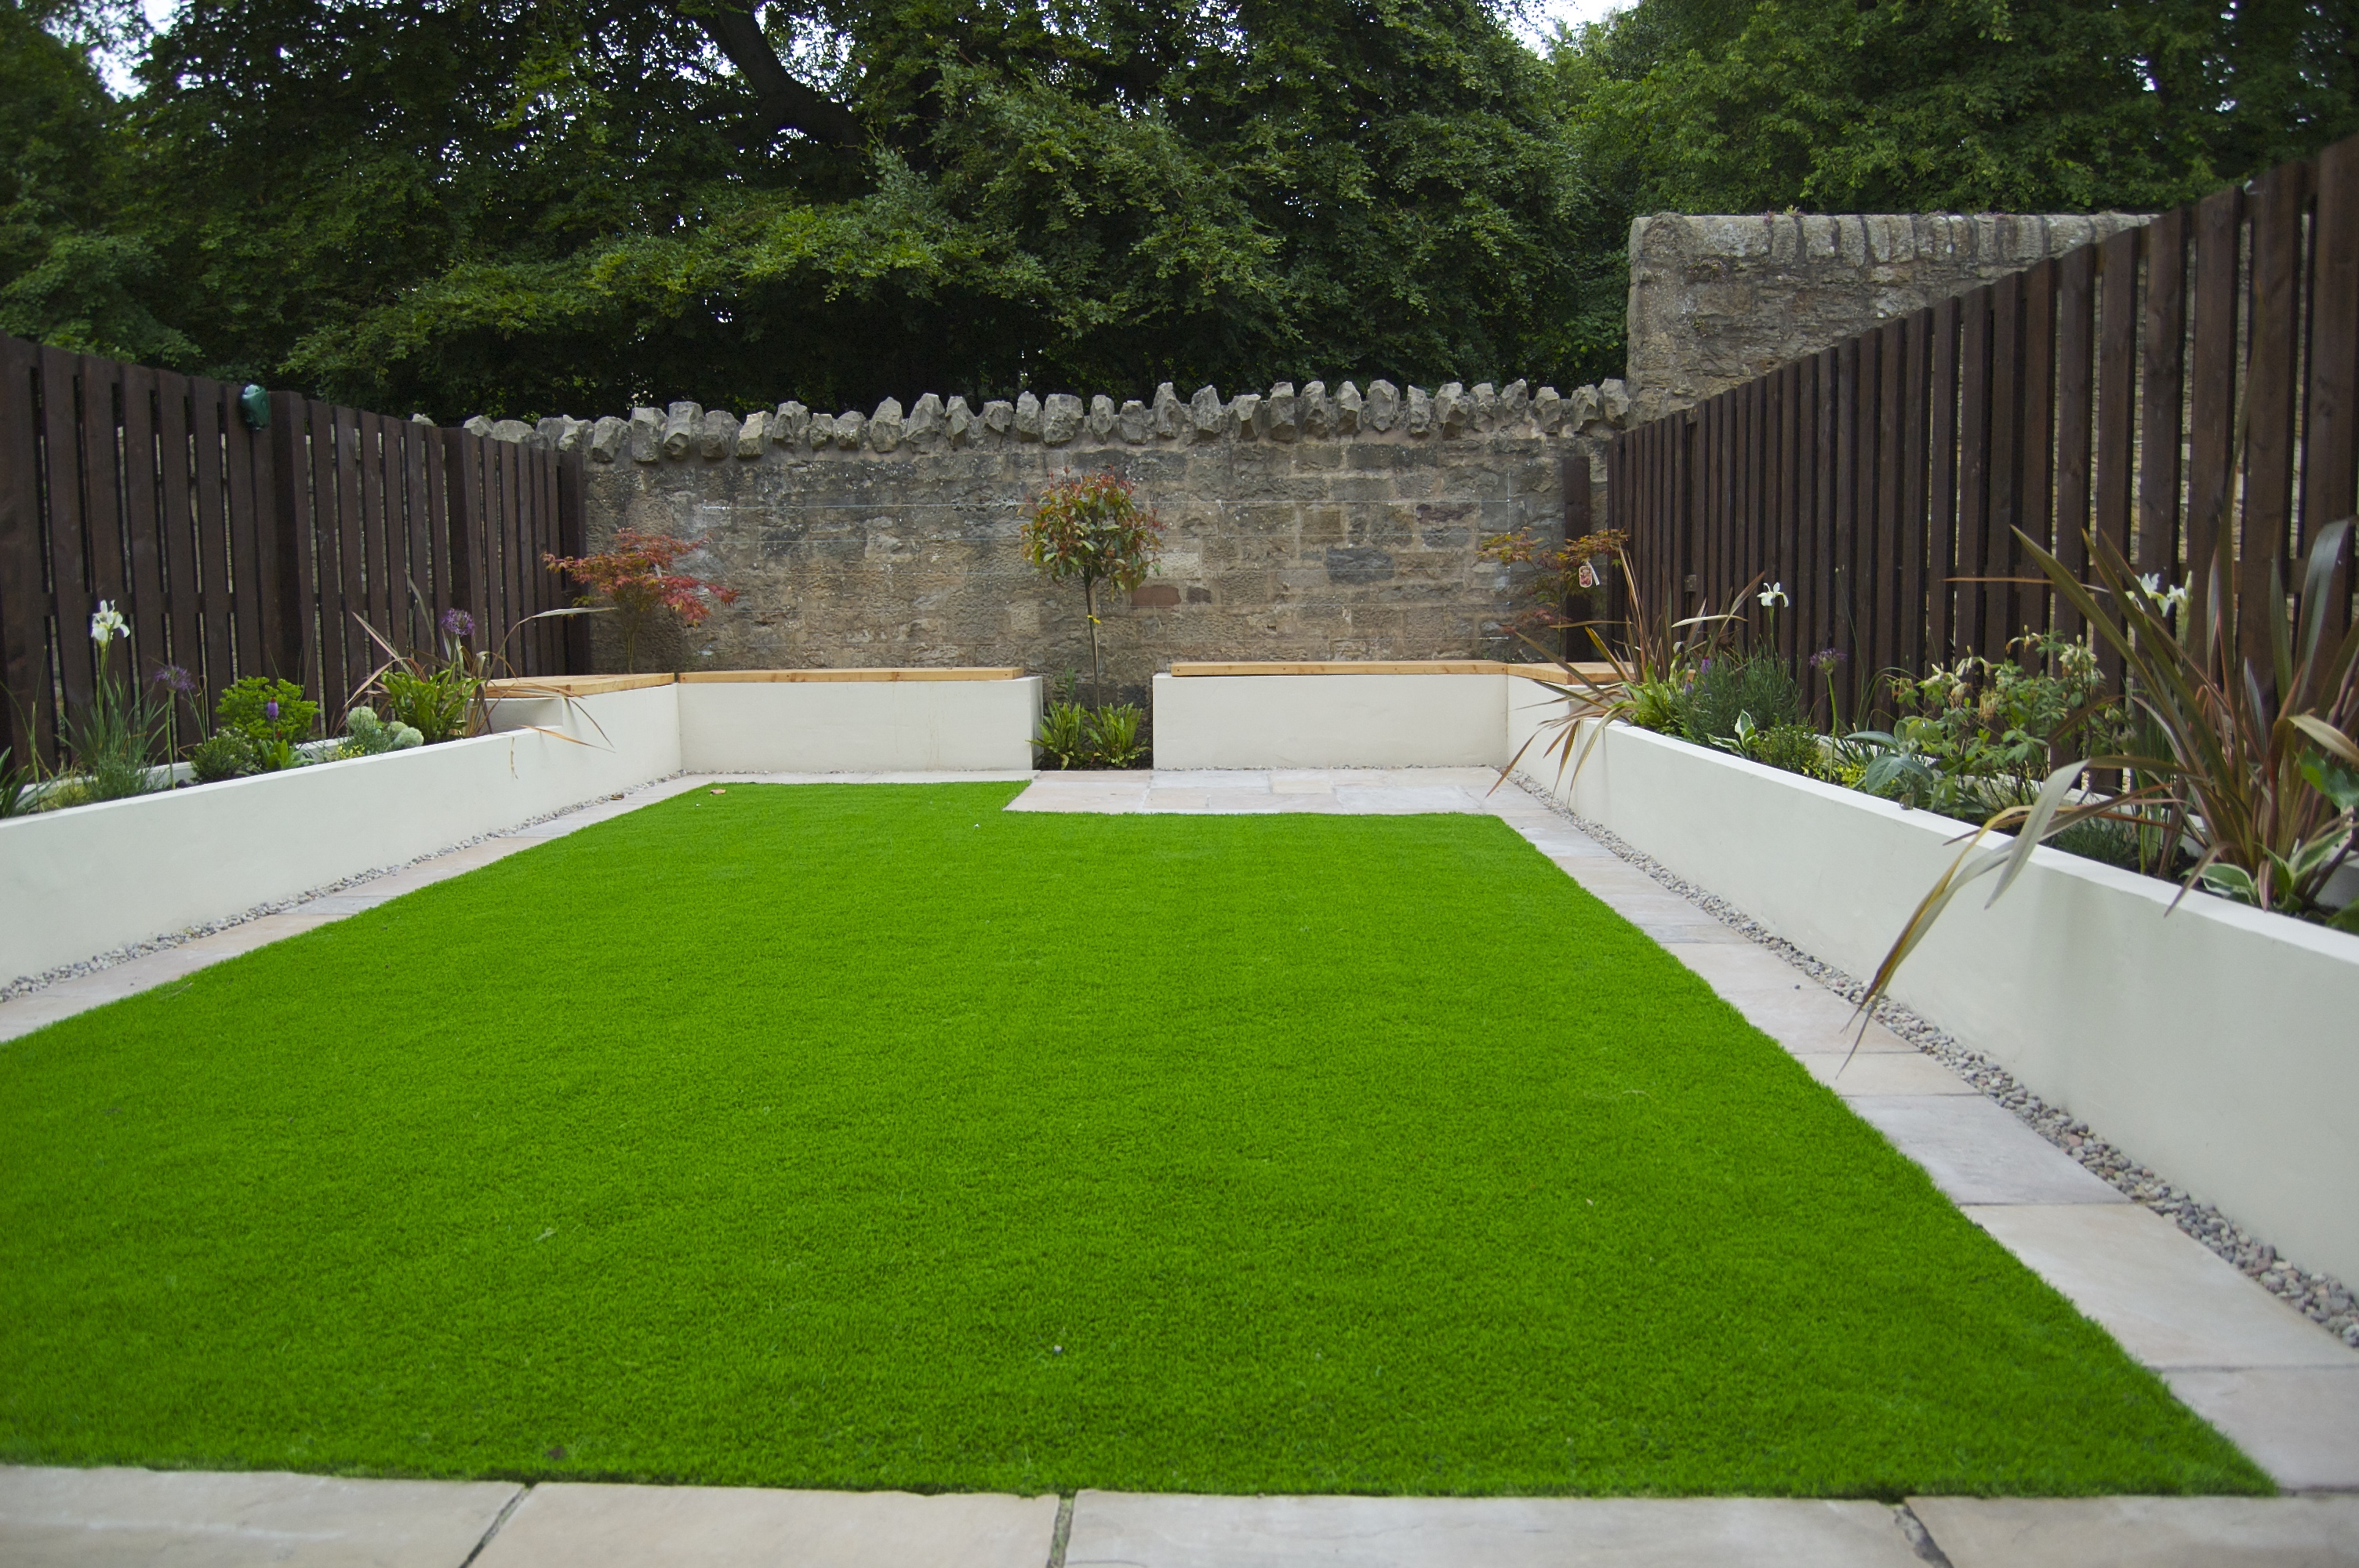 Artifcial lawn garden design project paul church gardens - Garden design using grasses ...